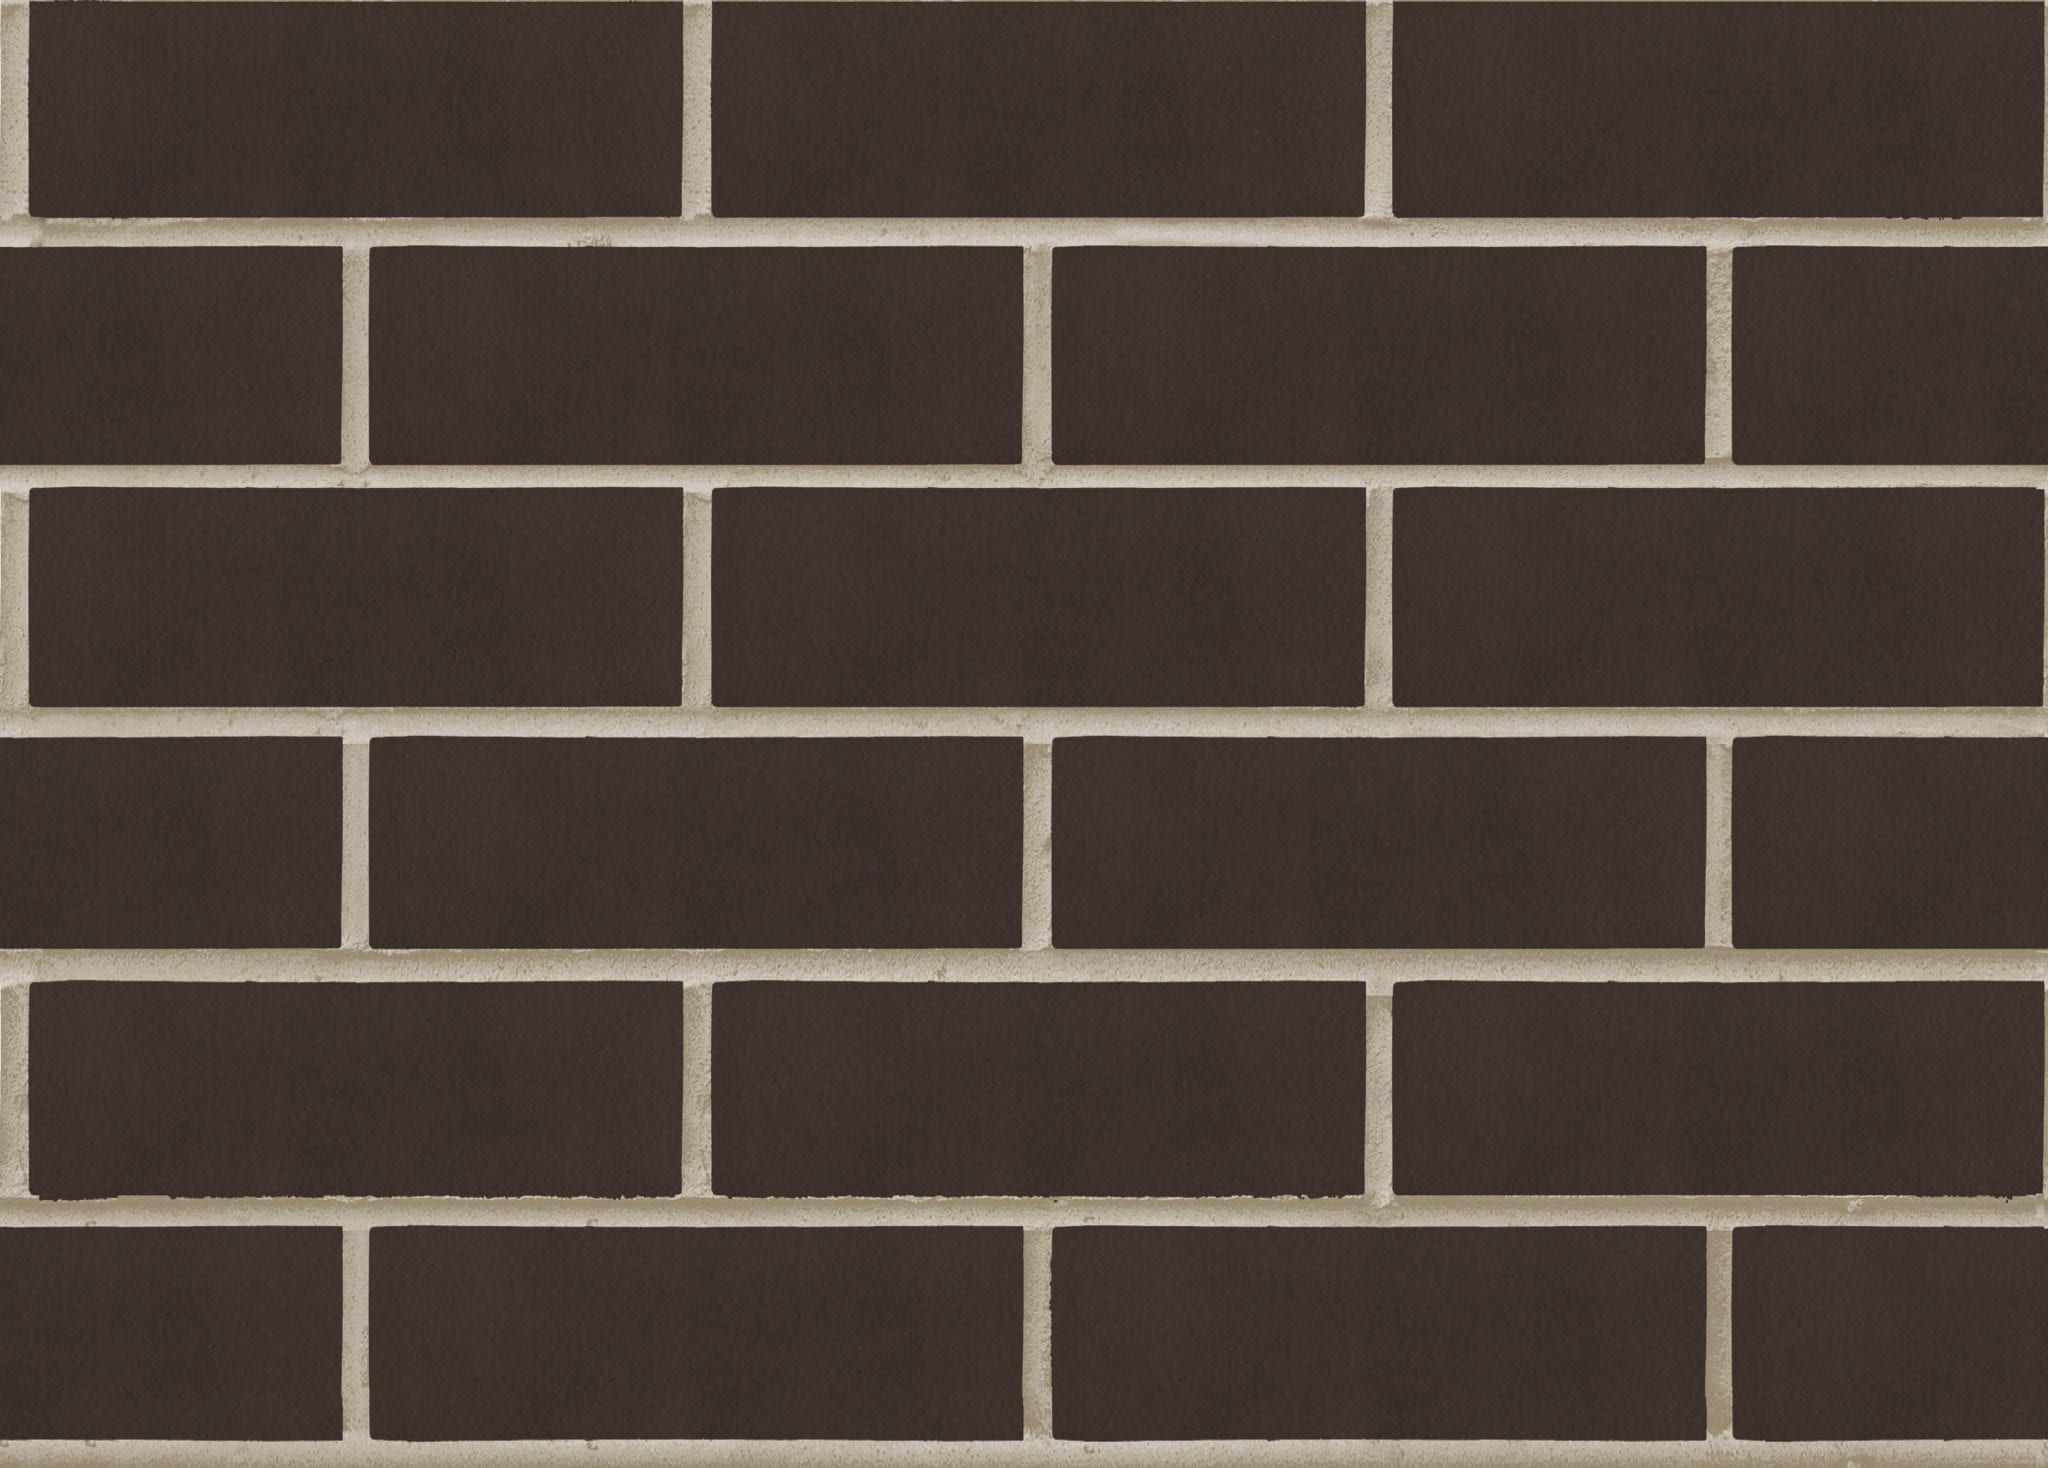 UltraSmoothRhythm230x76-110-240 - NSW Bricks